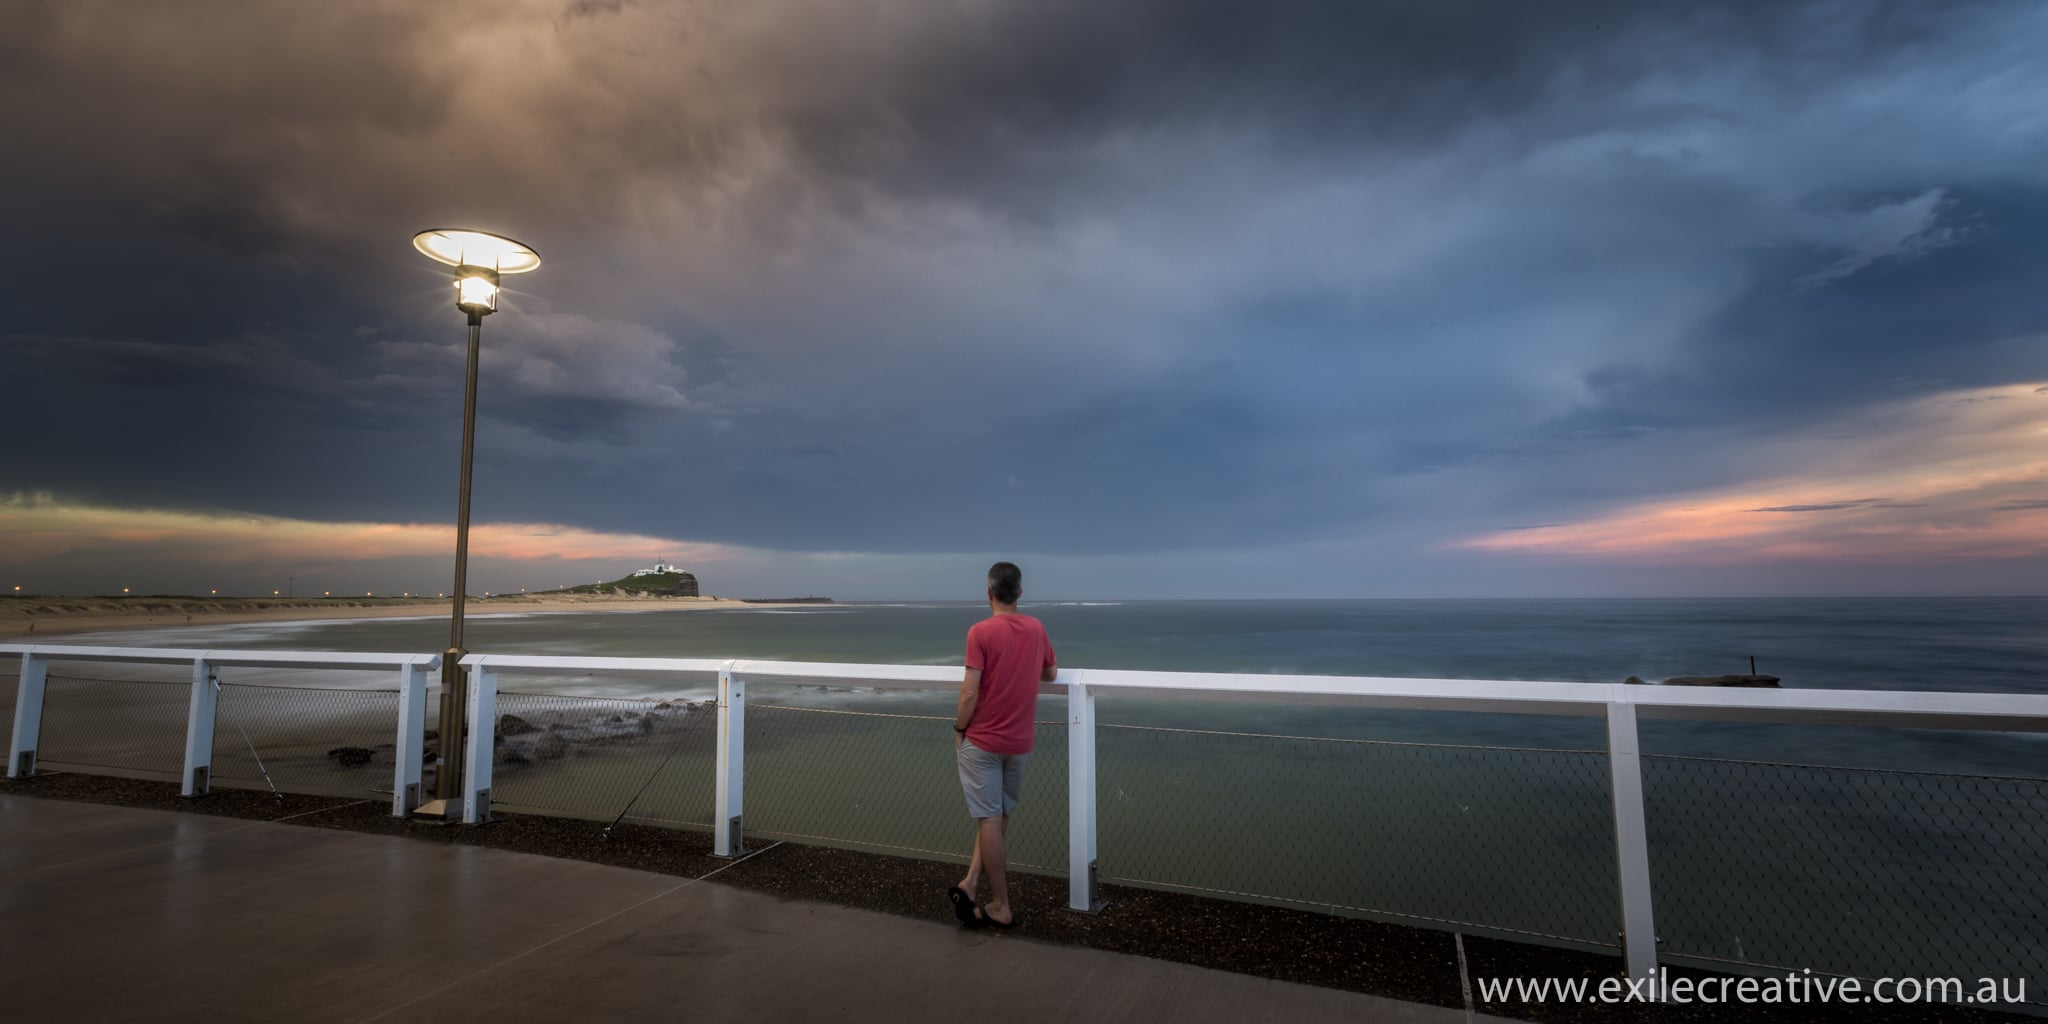 Watching the storm roll in over Nobbys